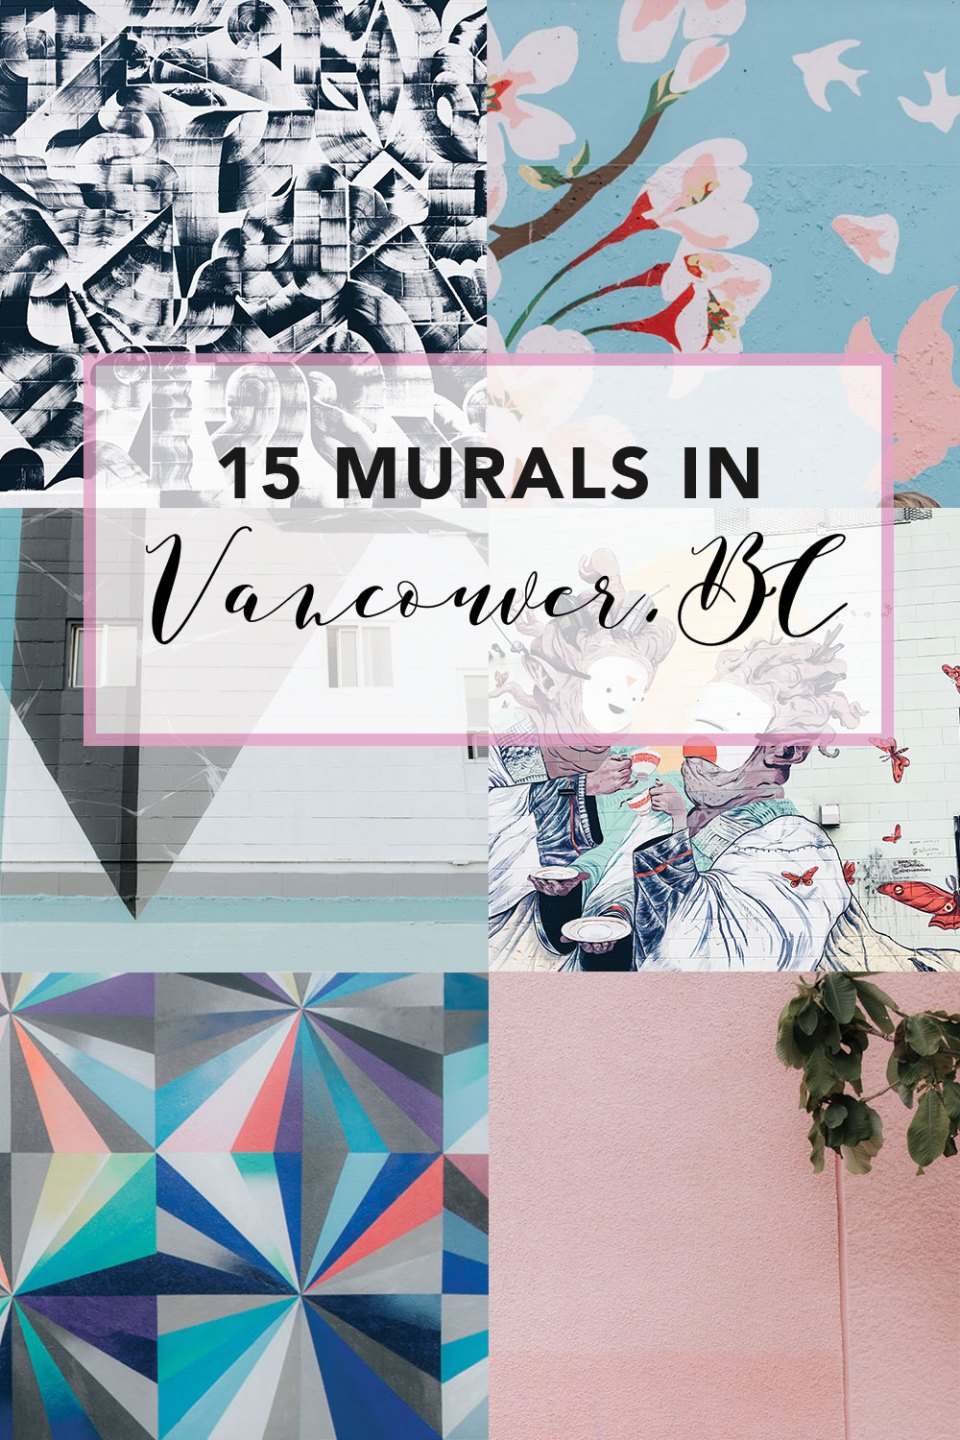 15 Murals / Colourful Walls in Vancouver, British Columbia | Explore the cite of Vancouver and discover these popular Murals on Main Street and in the Strathcona Area | Things to do in Vancouver on the weekend